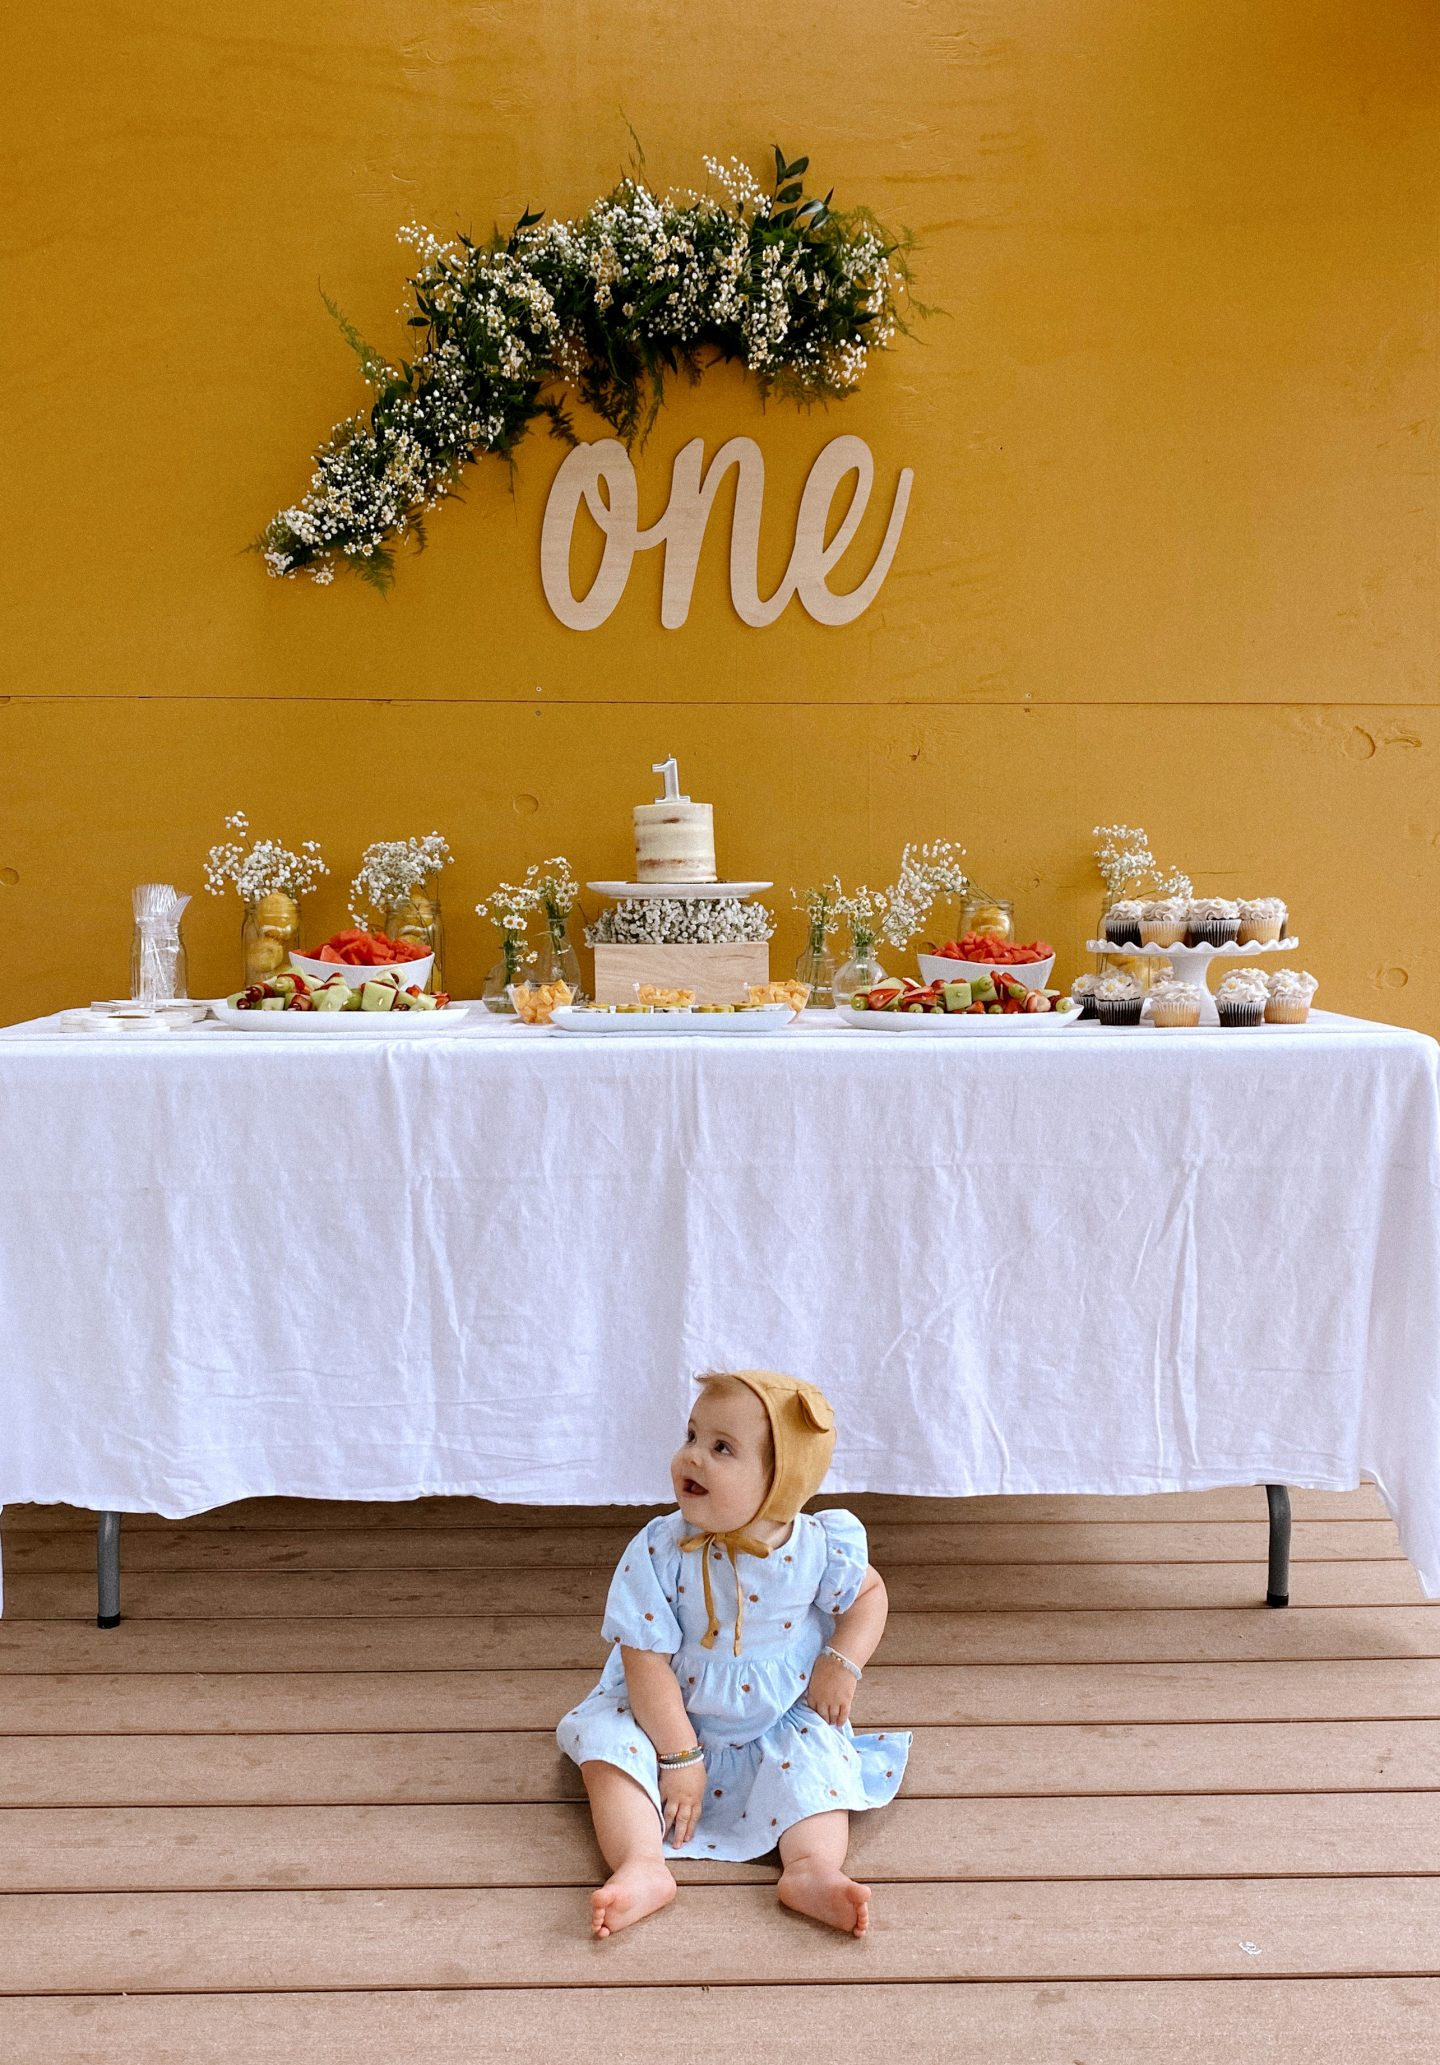 Daisy Theme Party by popular San Diego lifestyle blog, Navy Grace: image of a mustard yellow backdrop, wooden 'one' sign, daisy garland, food table with a cake, daisy shaped cakes, fruit skewers, vases filled with baby's breath and daisies, and daisy cupcakes and a one year old baby sitting in front of the food table wearing a blue daisy print Zara dress and Briar Baby Honey Bear bonnet.